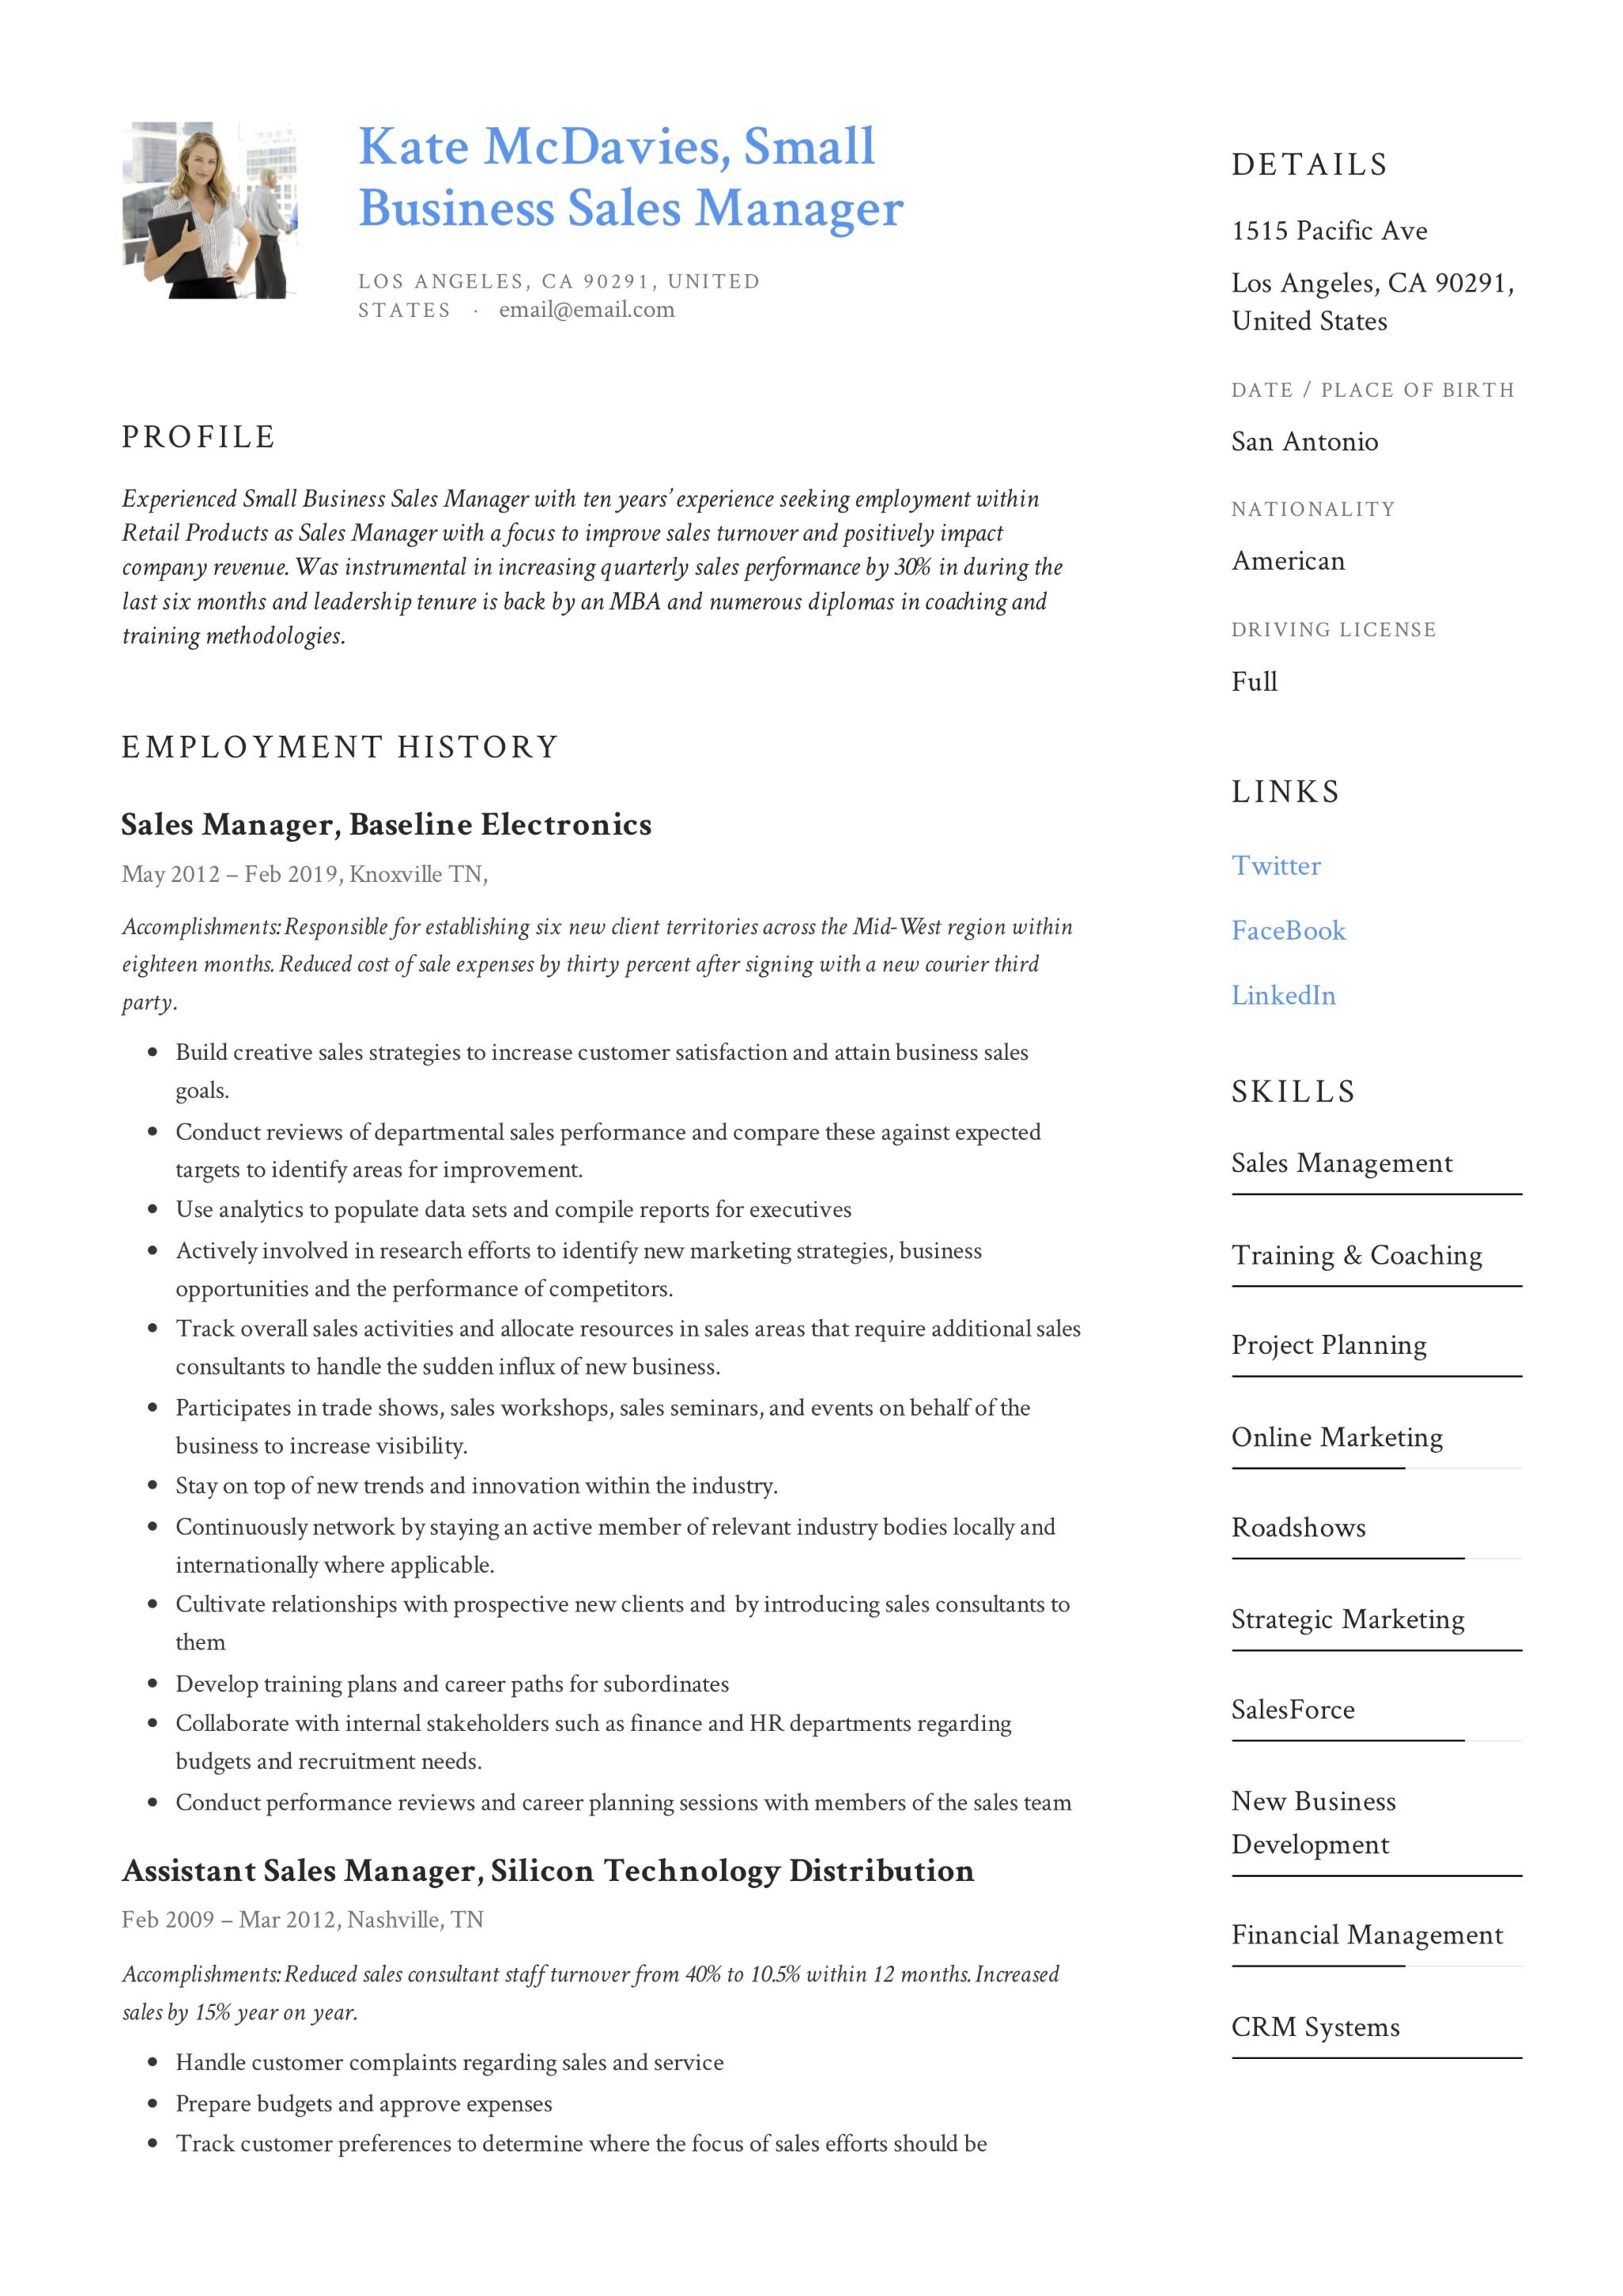 Business Resume Example 2019 58